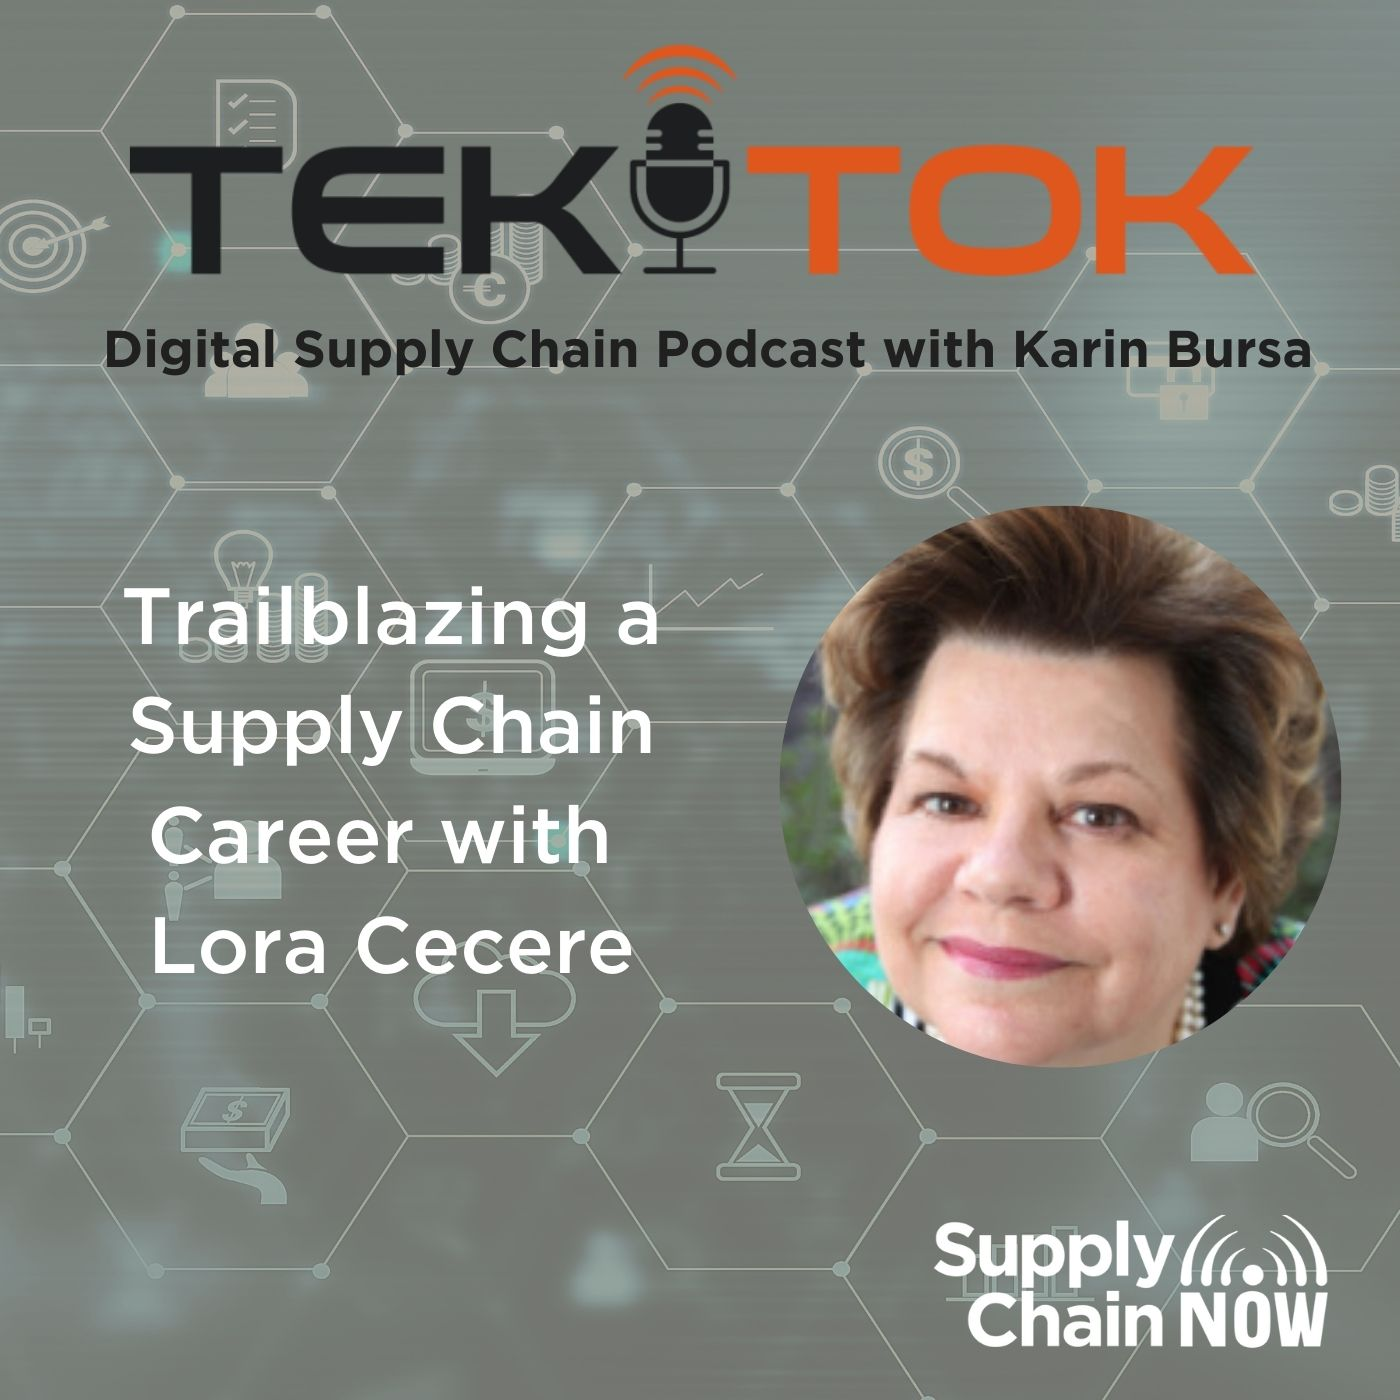 Trailblazing a Supply Chain Career with Lora Cecere